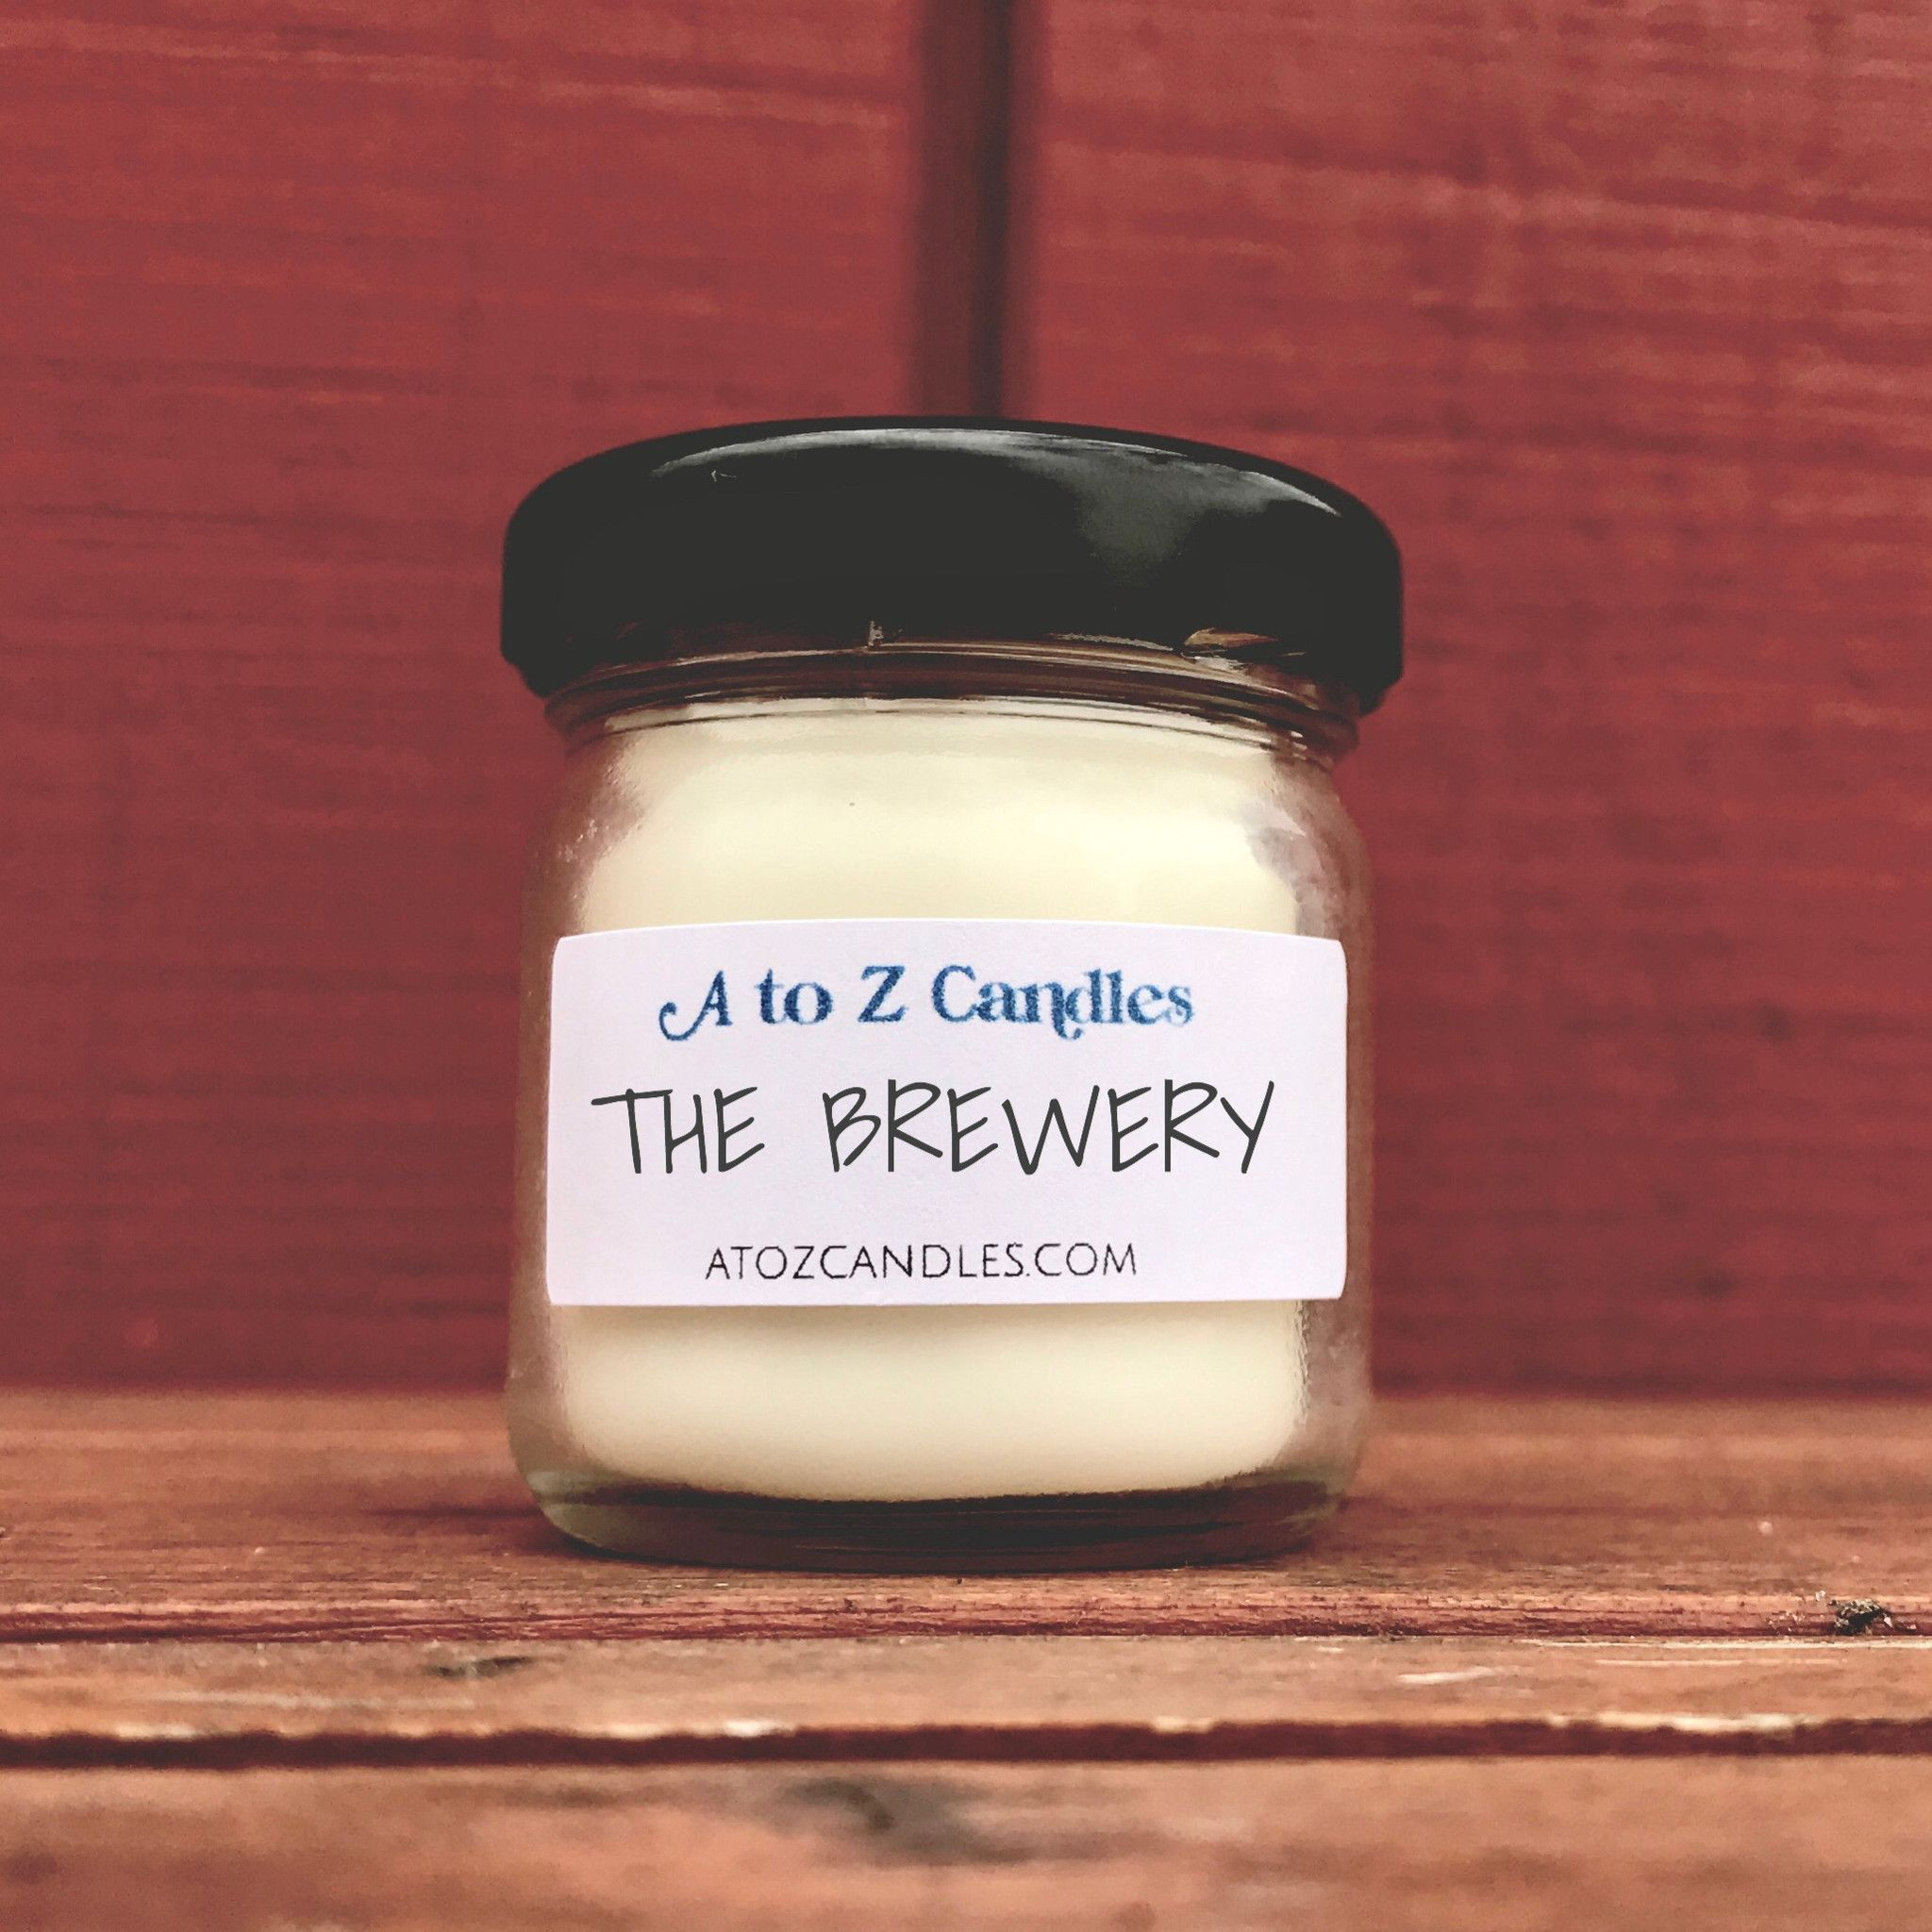 The Brewery - 1oz Mini Jar Candle